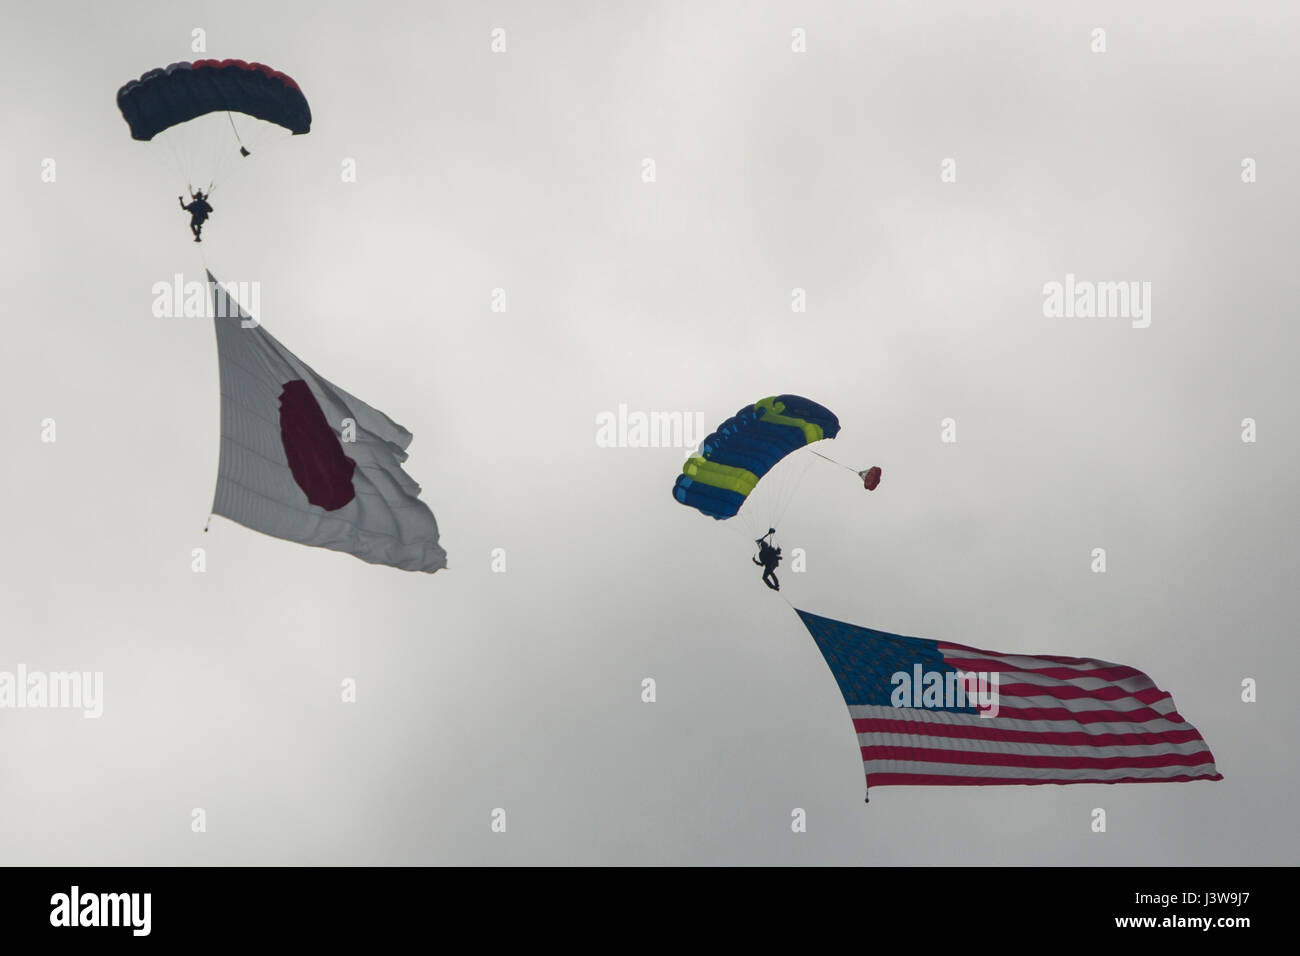 Evolve Aerosports executes a flag jump during the 41st Japan Maritime Self-Defense Force – Marine Corps Air Station - Stock Image